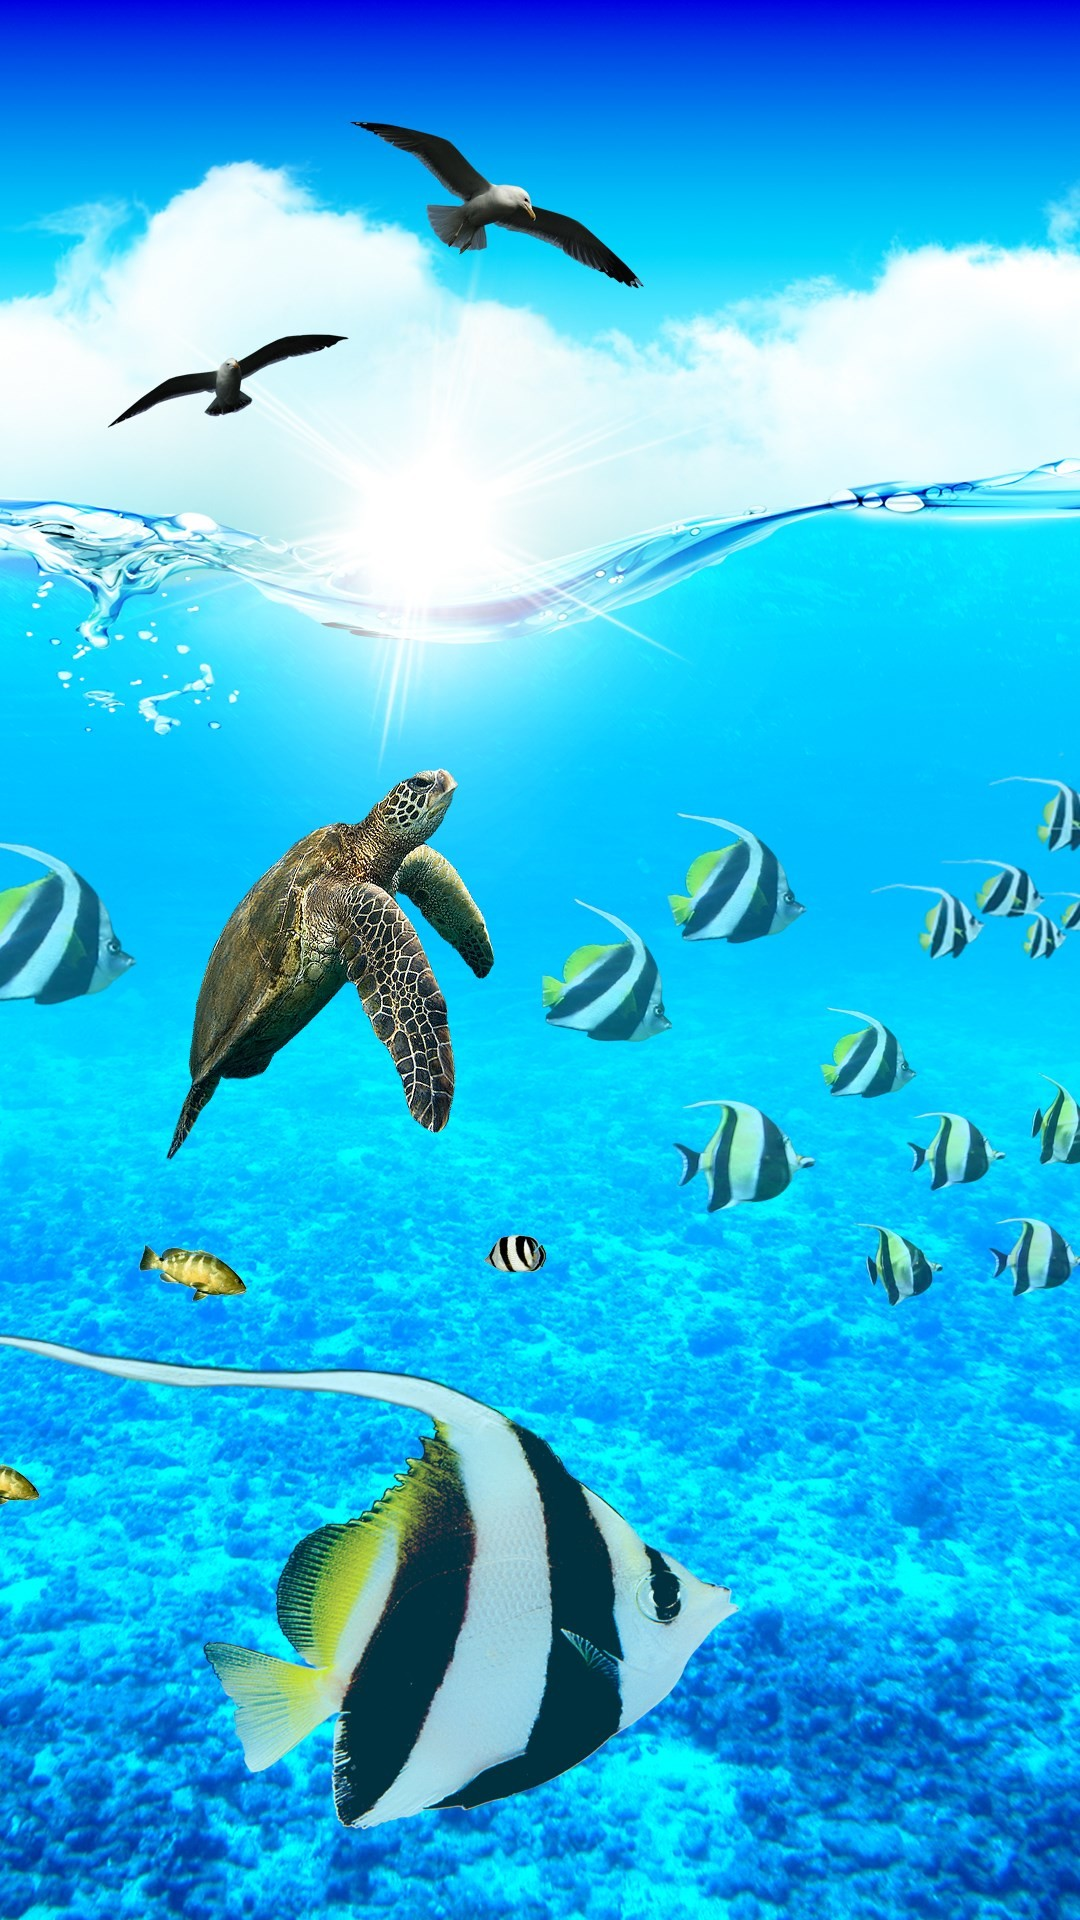 Res: 1080x1920, Underwater Wallpaper Gallery Beautiful Sea Animals Backgrounds. Wallpapers  Page 3 Premiumjoypl